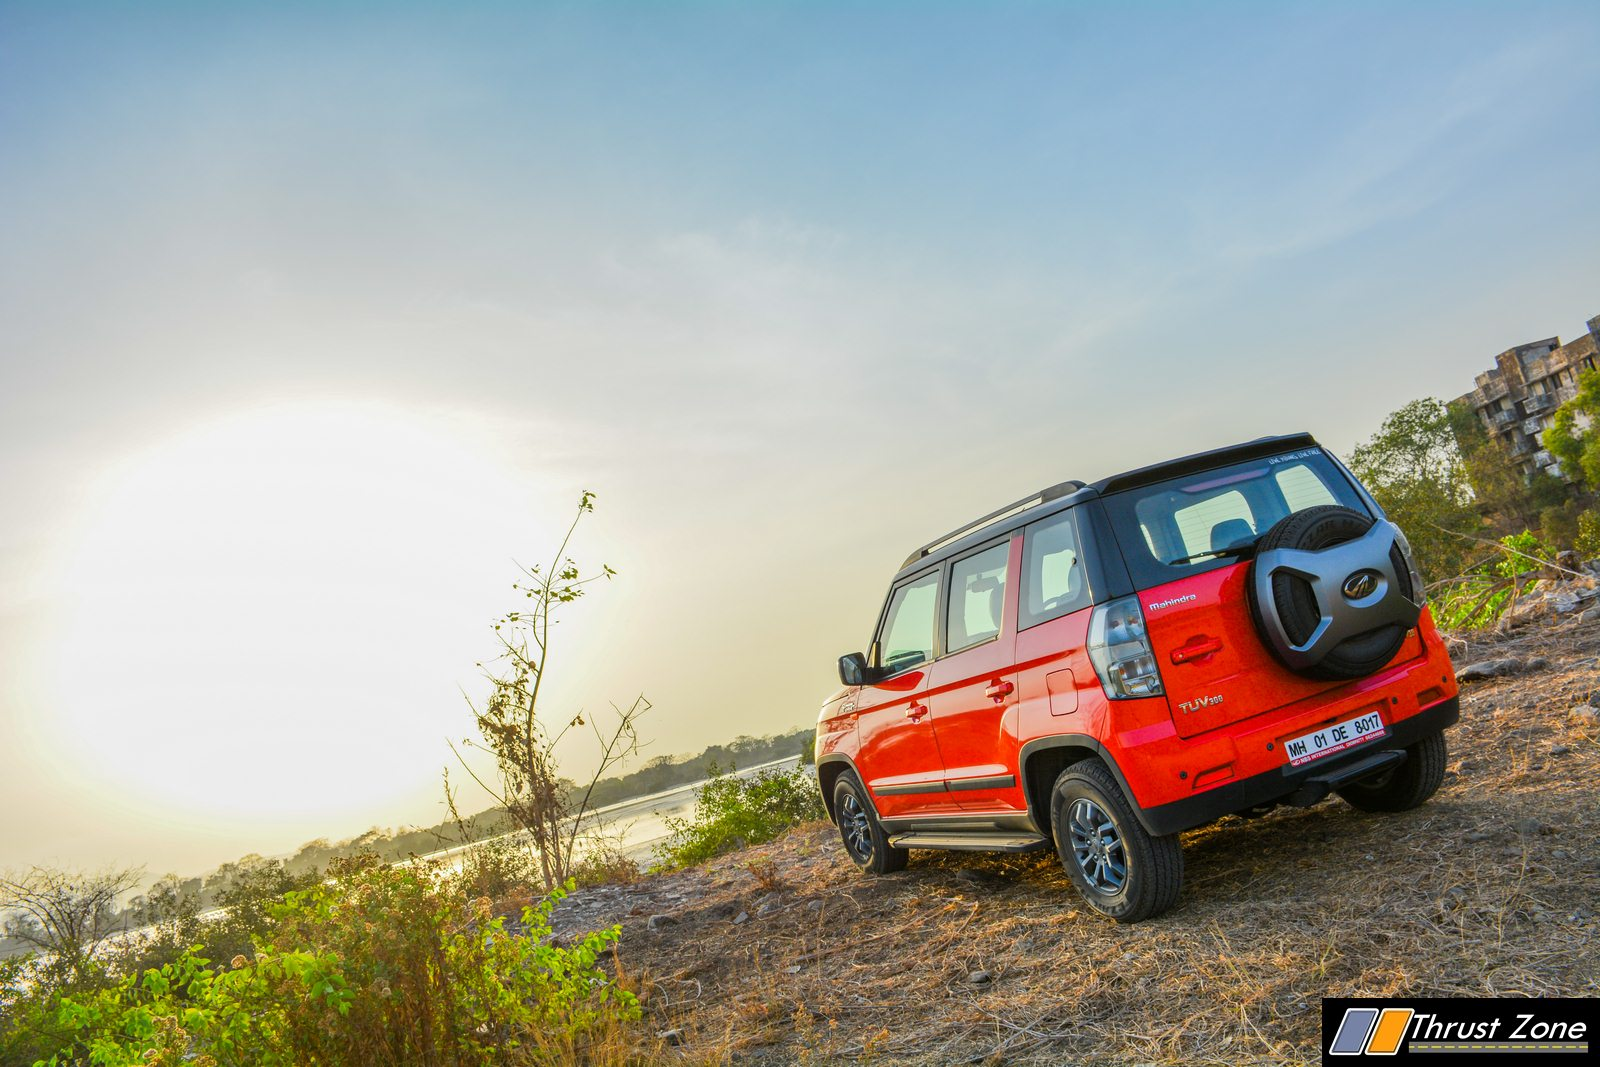 https://www.thrustzone.com/wp-content/uploads/2019/06/2019-mahindra-tuv-300-facelift-review-19-2.jpg